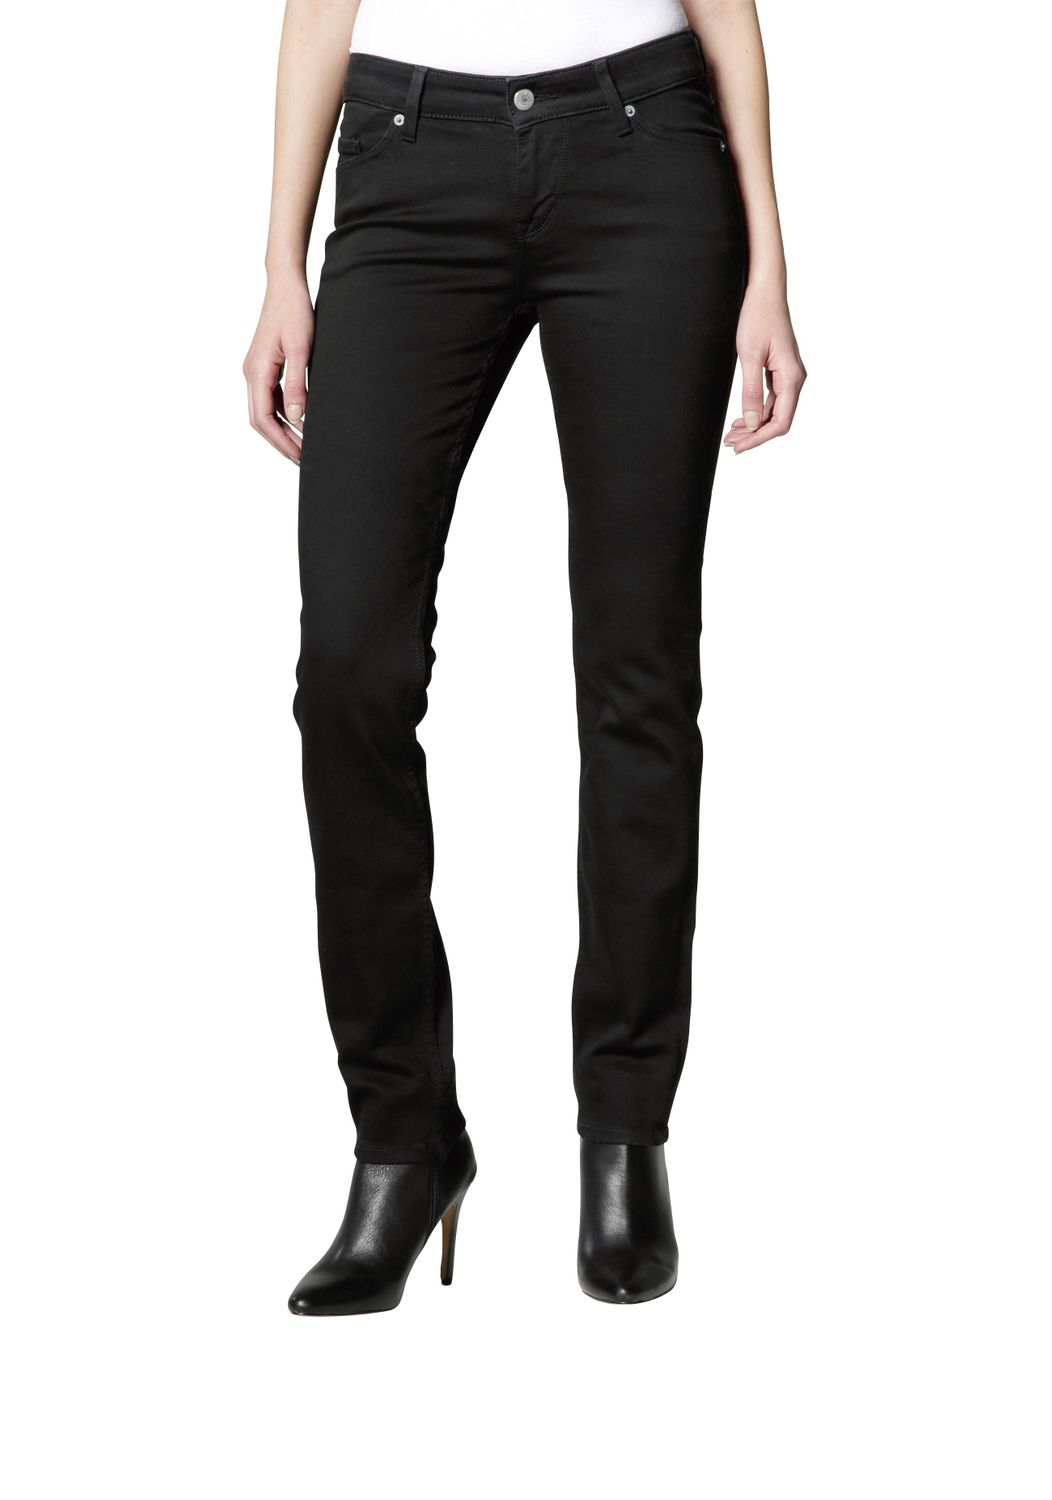 Mustang - Slim Leg/Medium Rise - Damen Jeans Hose in Schwarz (midnight black), Jasmin Slim (586-5174-490) 001